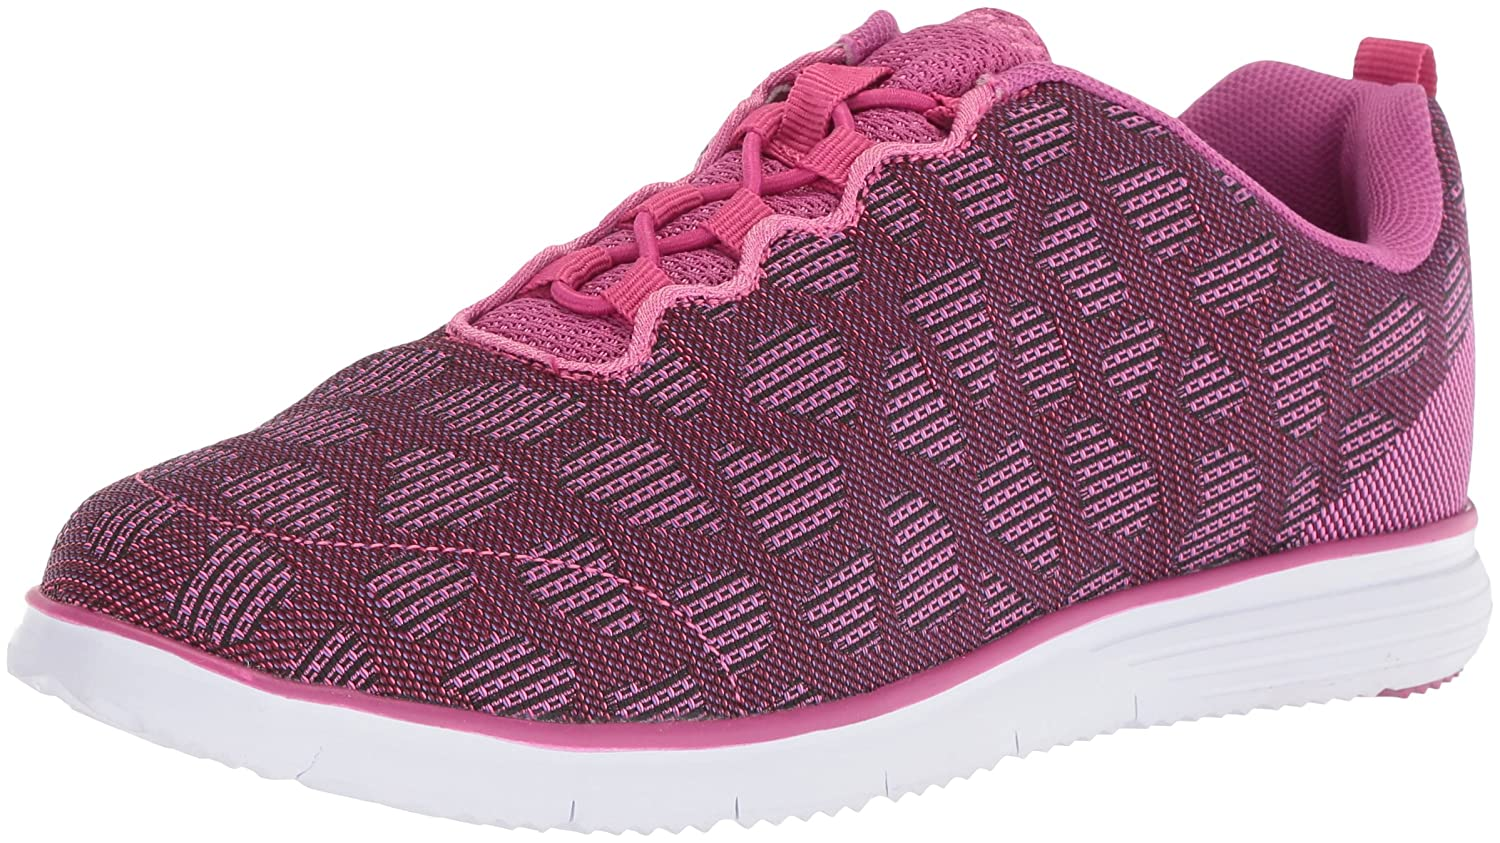 Propét Women's TravelFit Walking Shoe B073DNM1QW 7.5 2E US|Berry